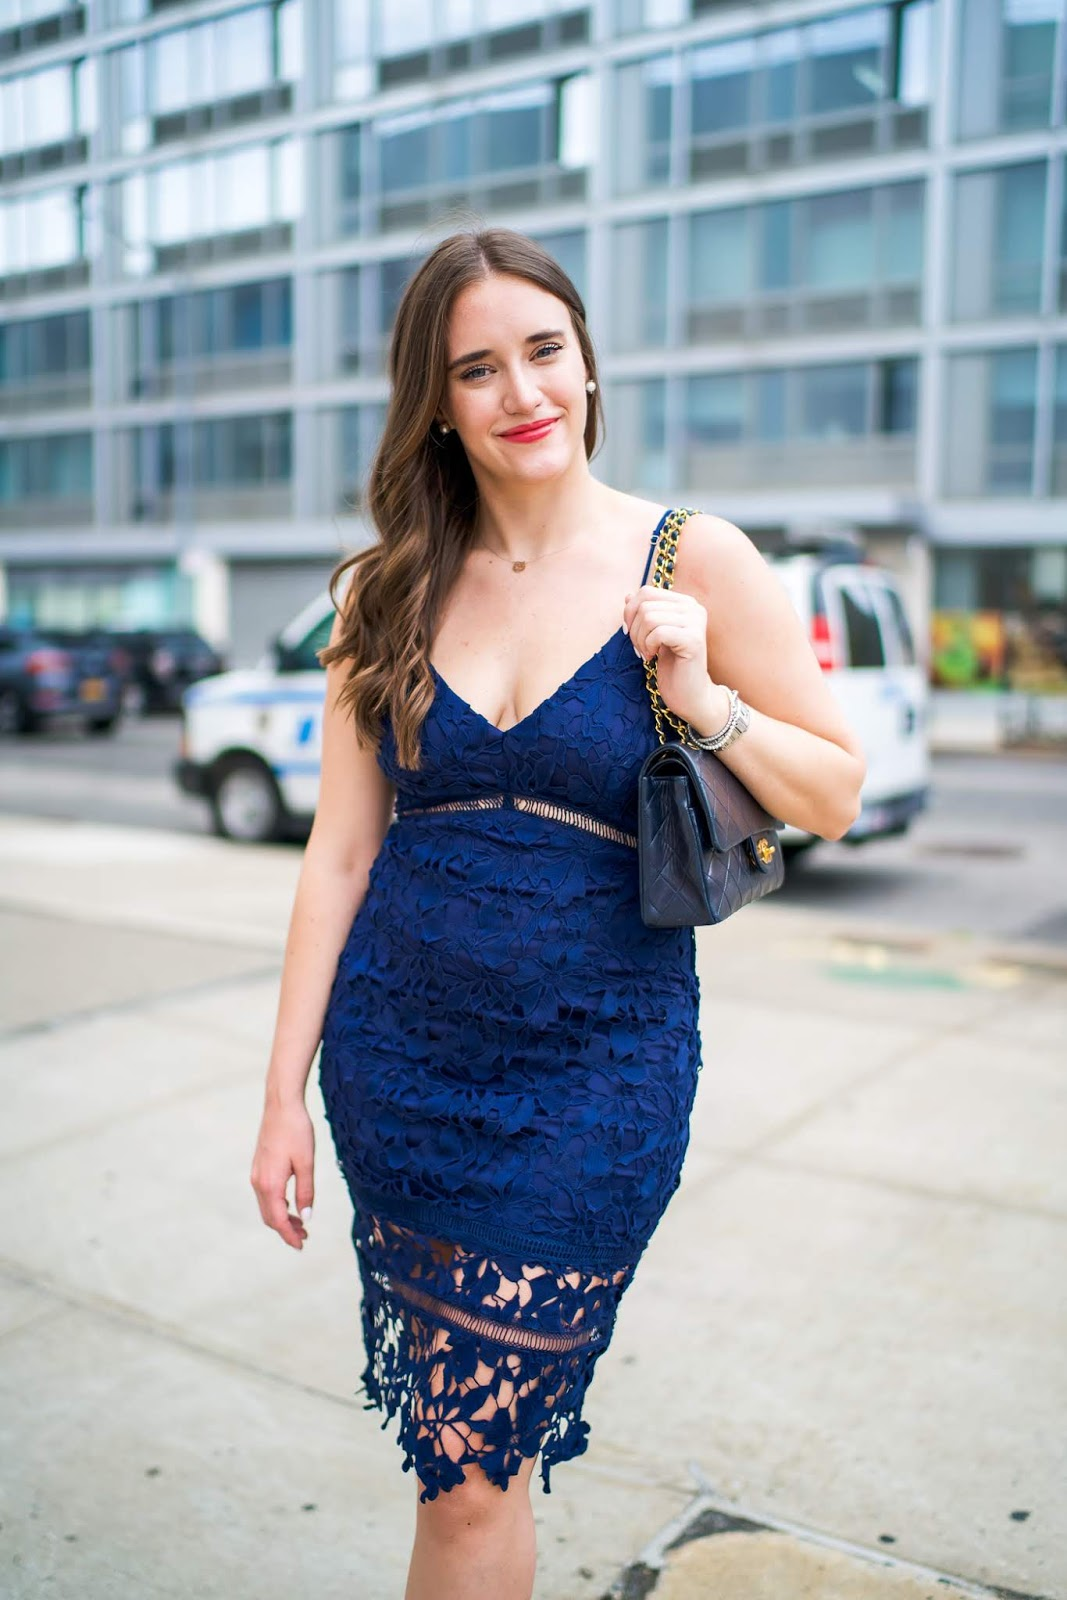 Formal Wedding Guest Dress (Under $100) featured by popular New York style blogger, Covering the Bases